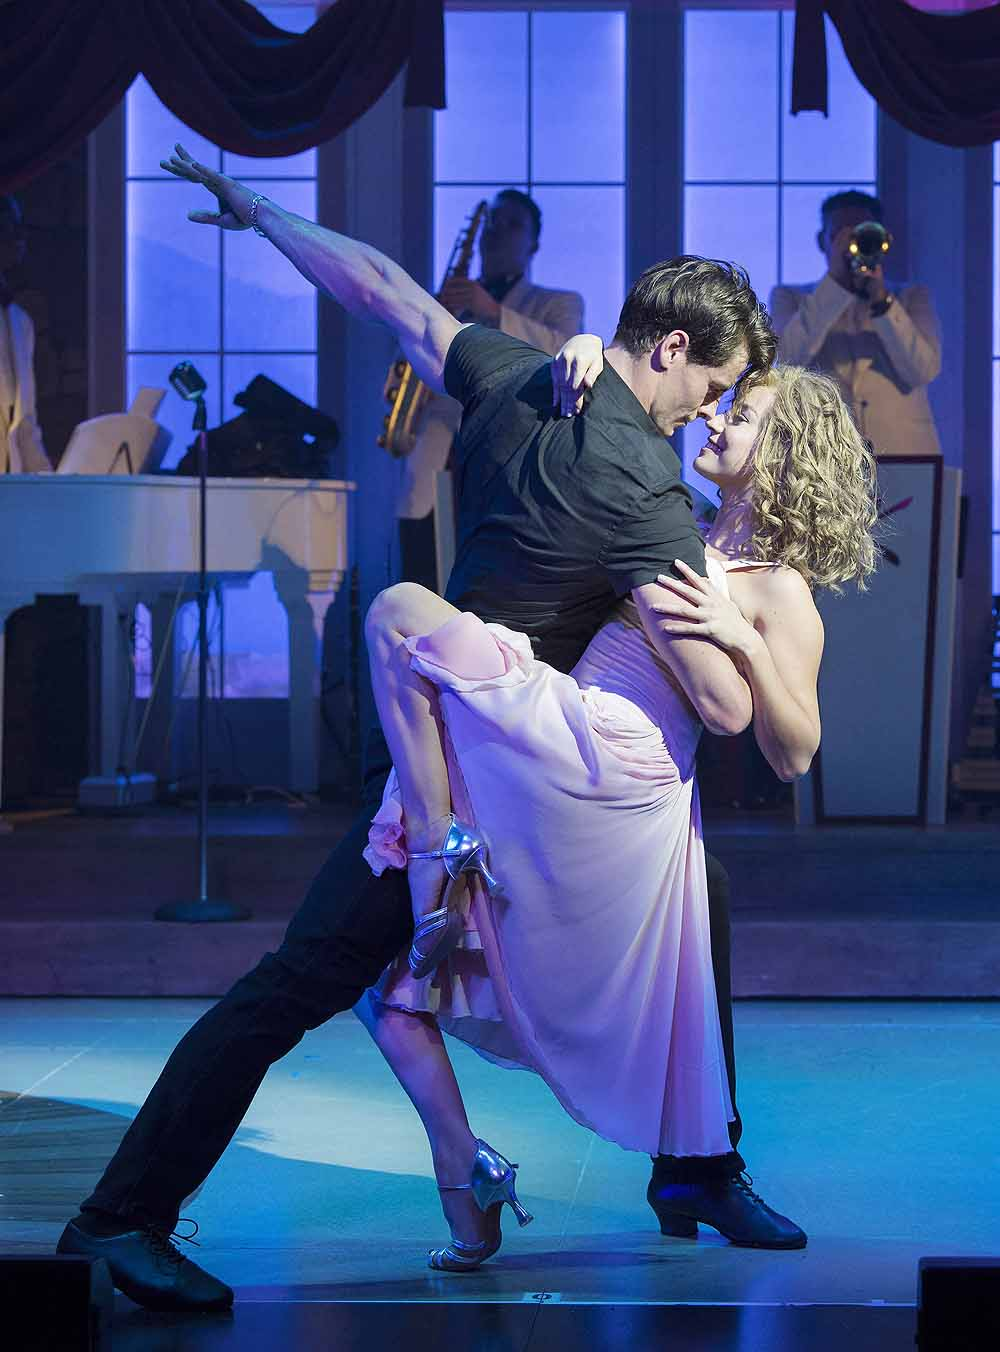 Kira Malou (Baby) Michael O'Reilly (Johnny); in Dirty Dancing - The Classic Story on Stage. Photo credit Alastair Muir